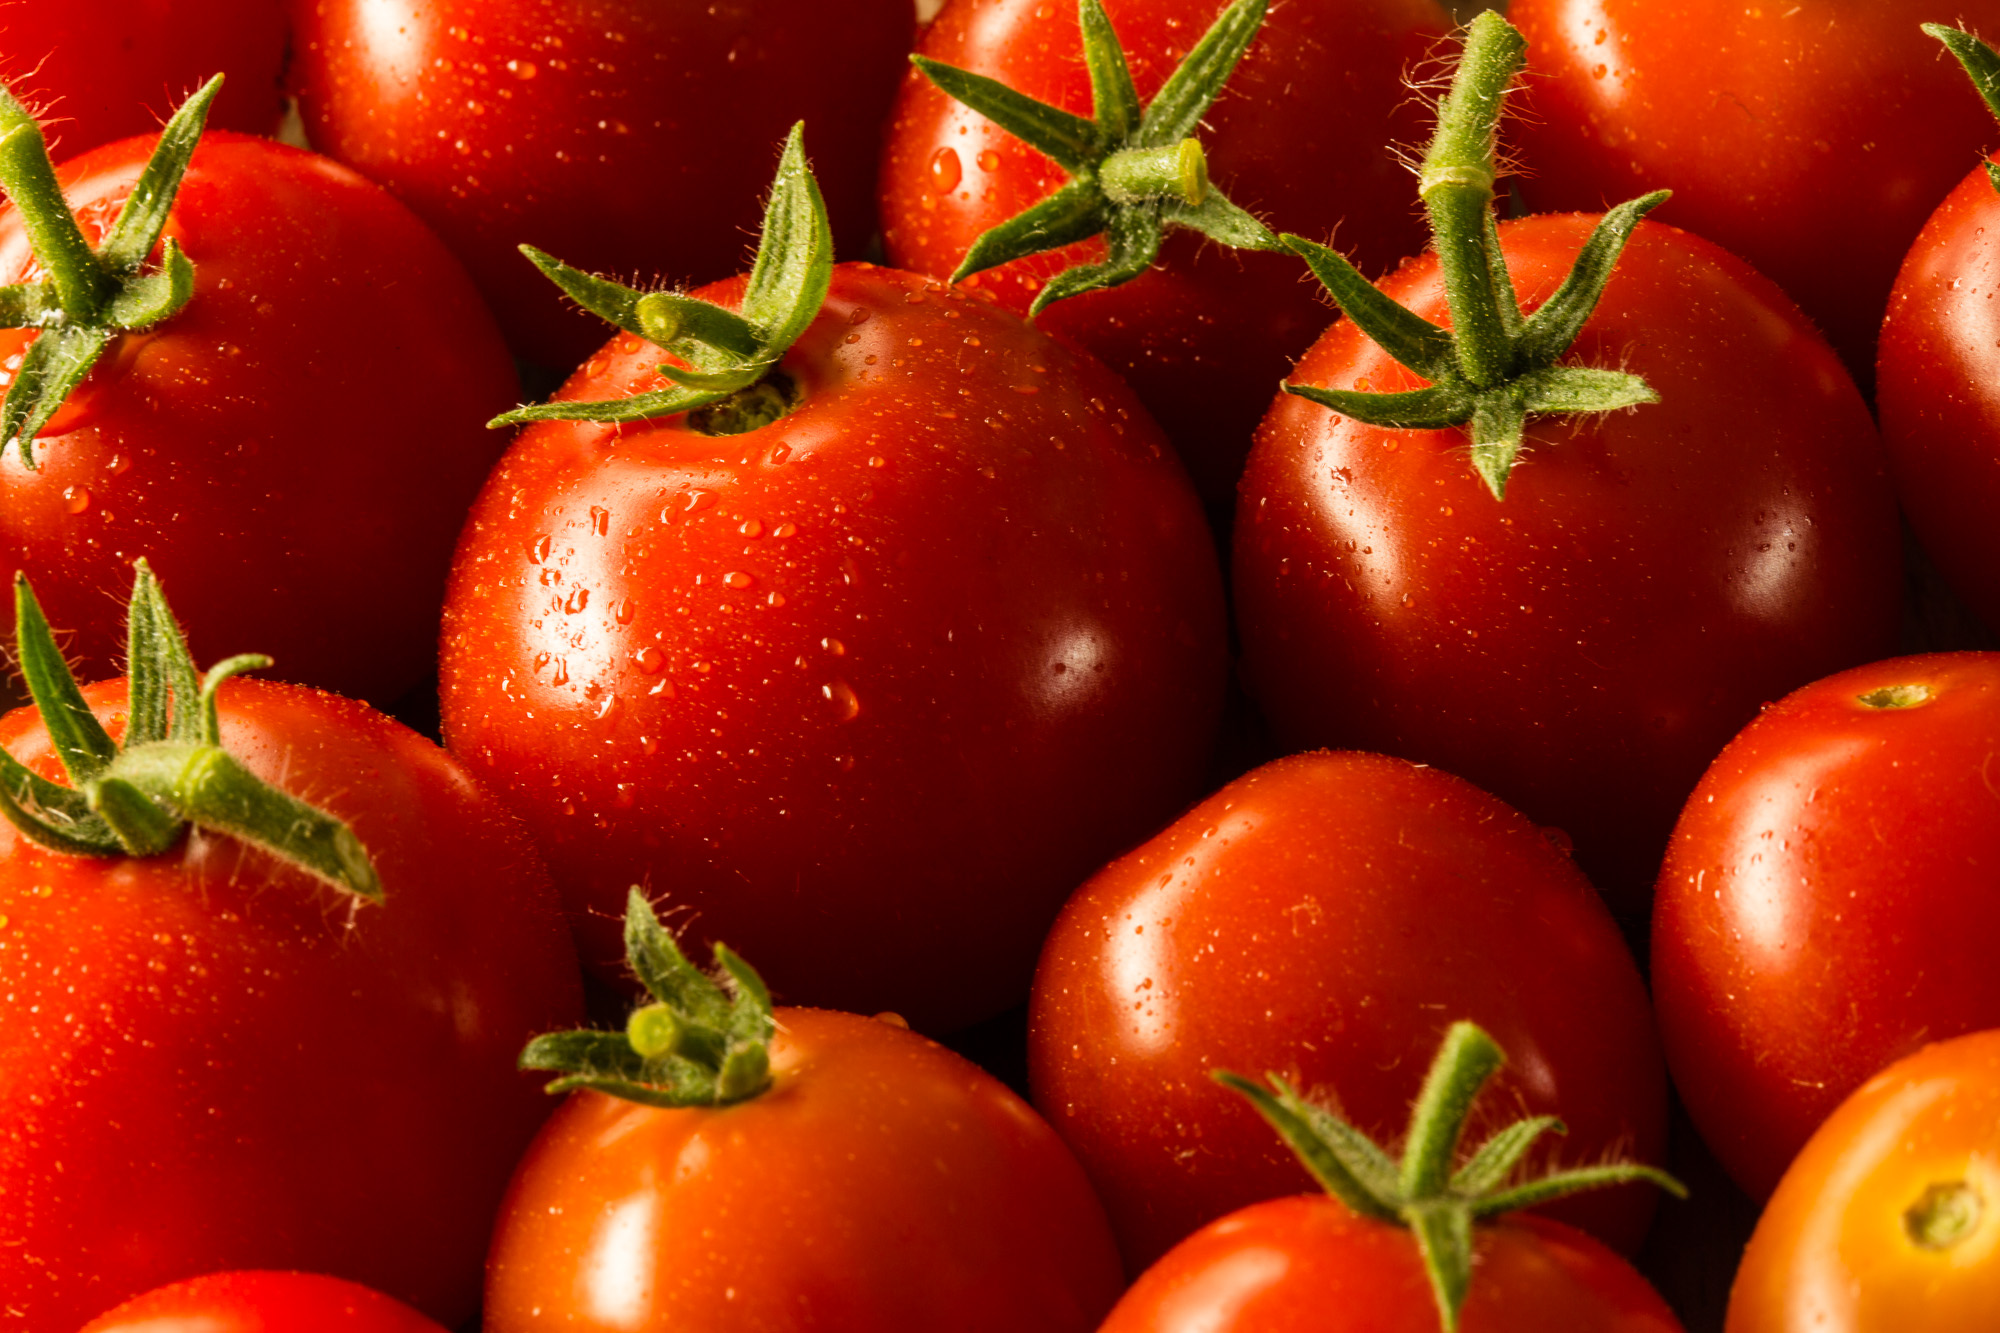 Professional food photo of grape tomatoes. Close up photo. Commercial photography